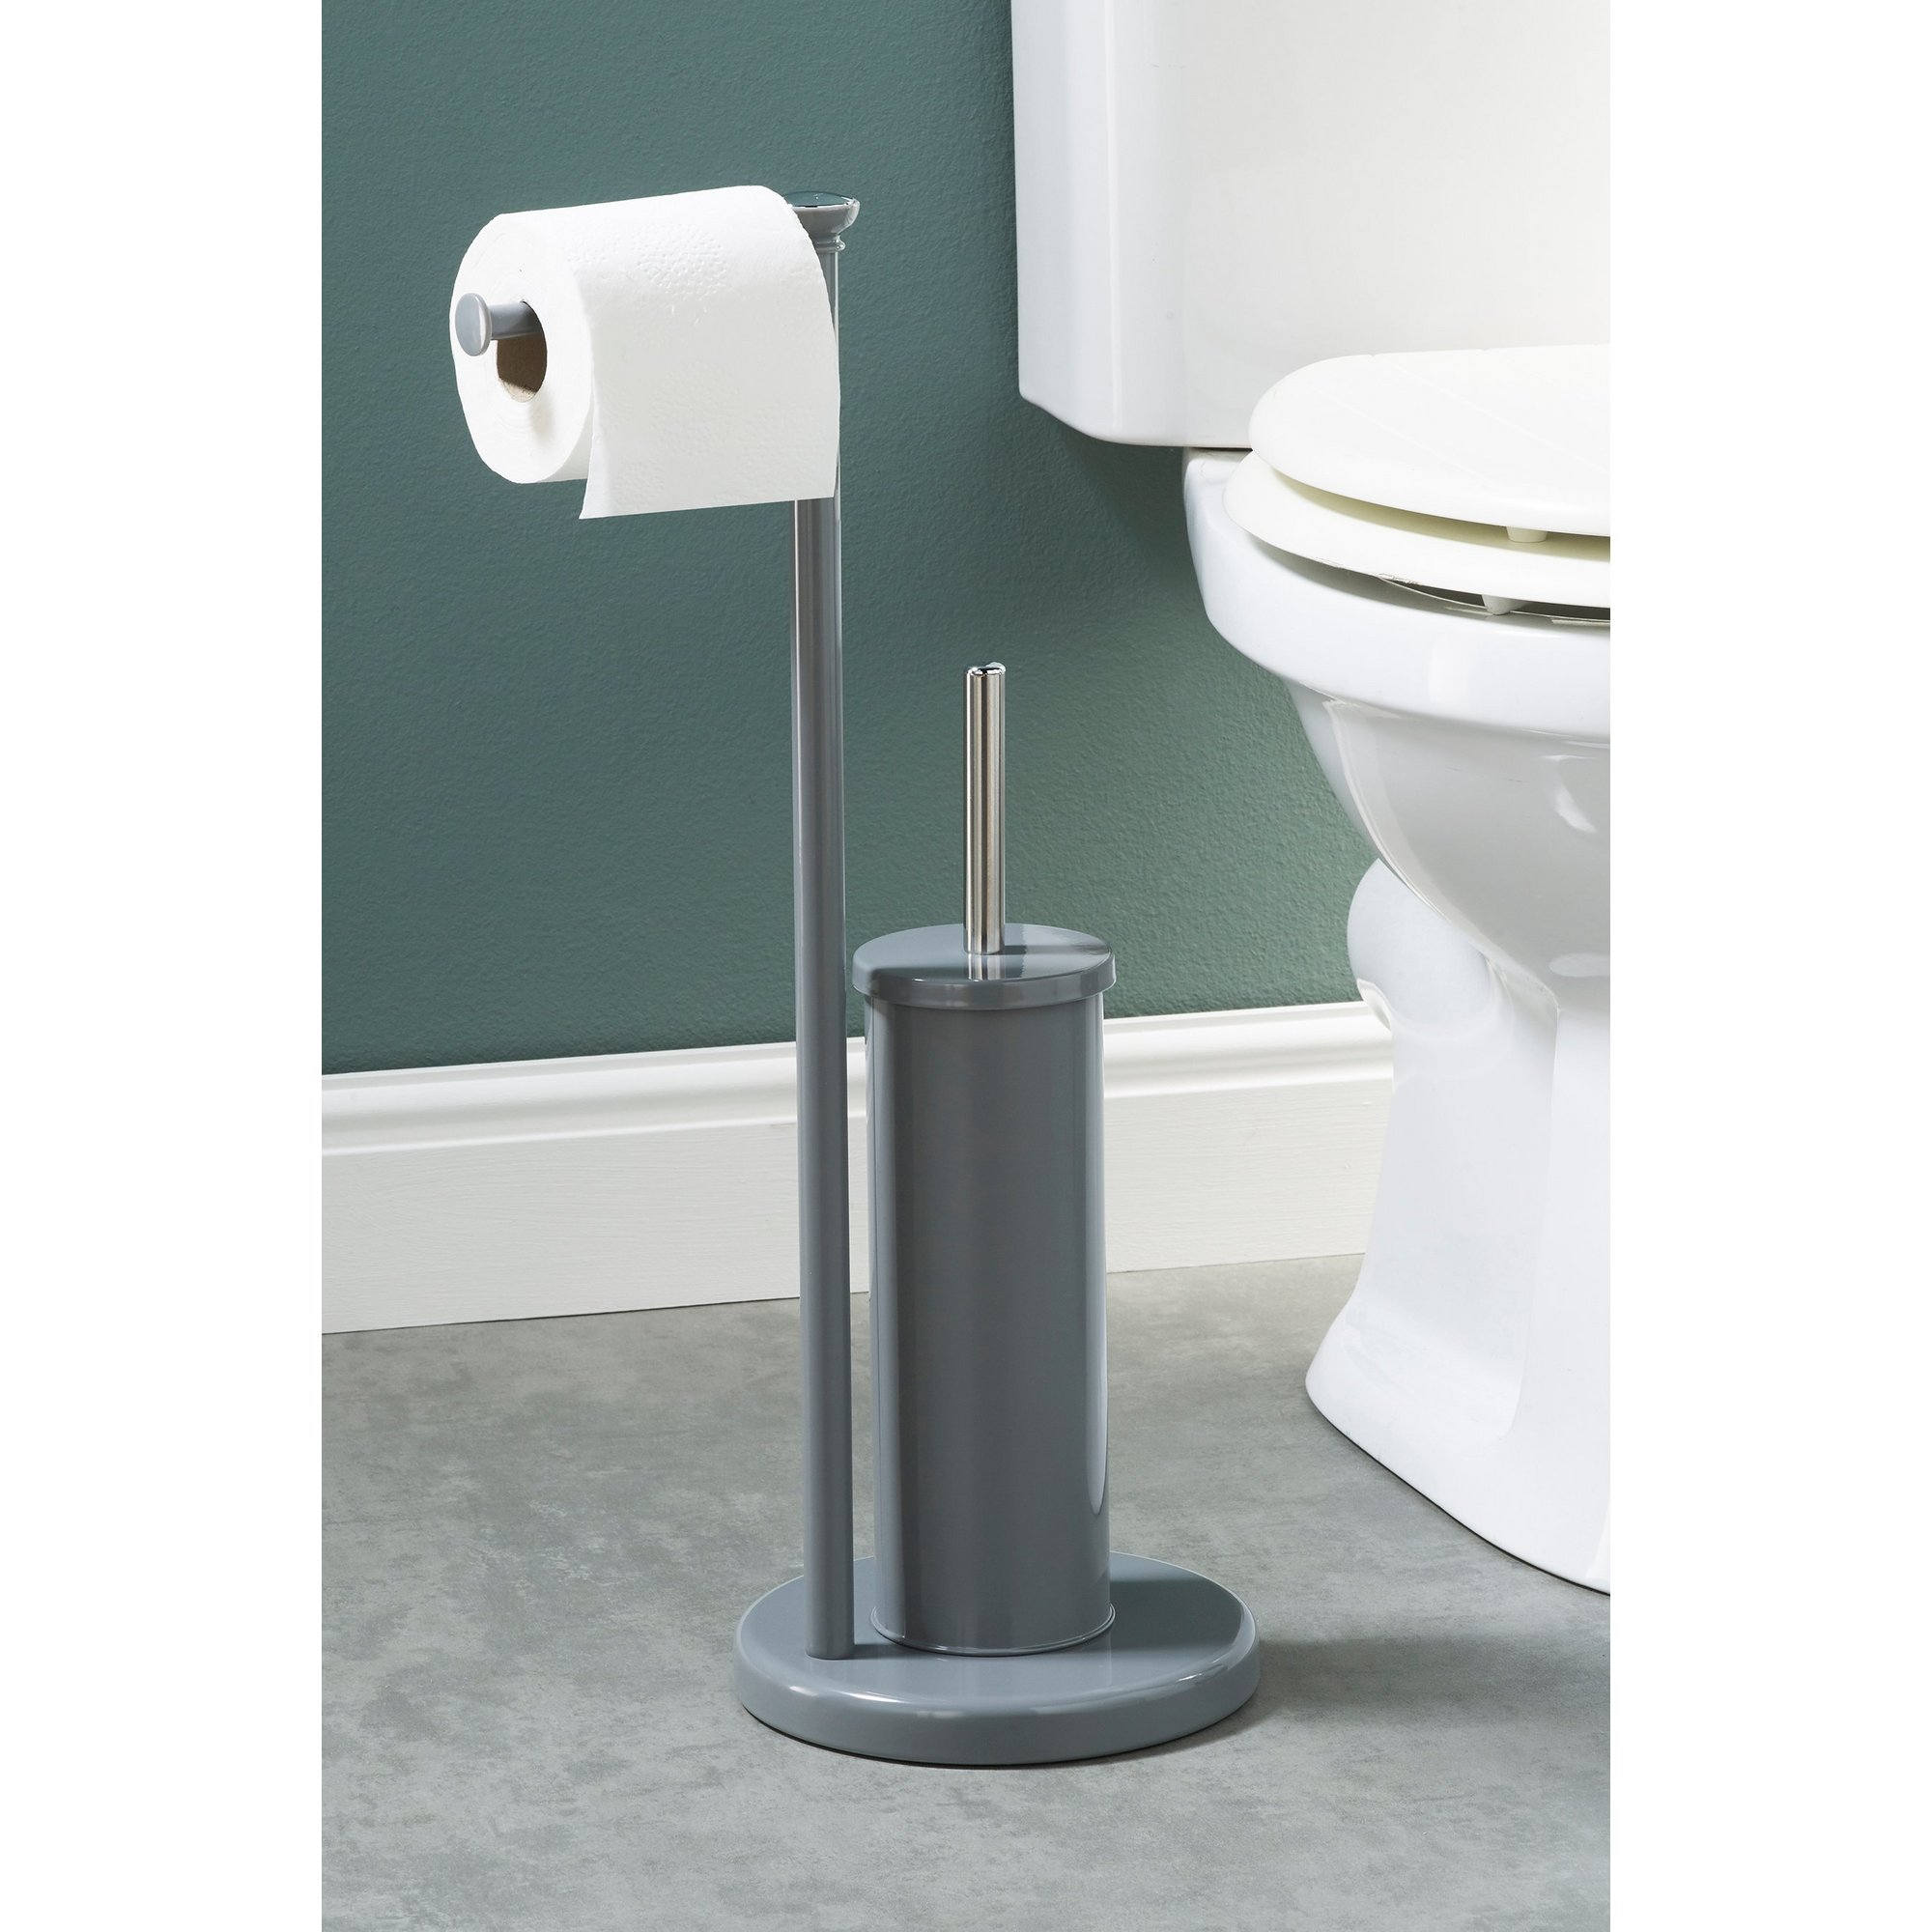 Image of 2 Piece Toilet Roll Holder and Brush Set